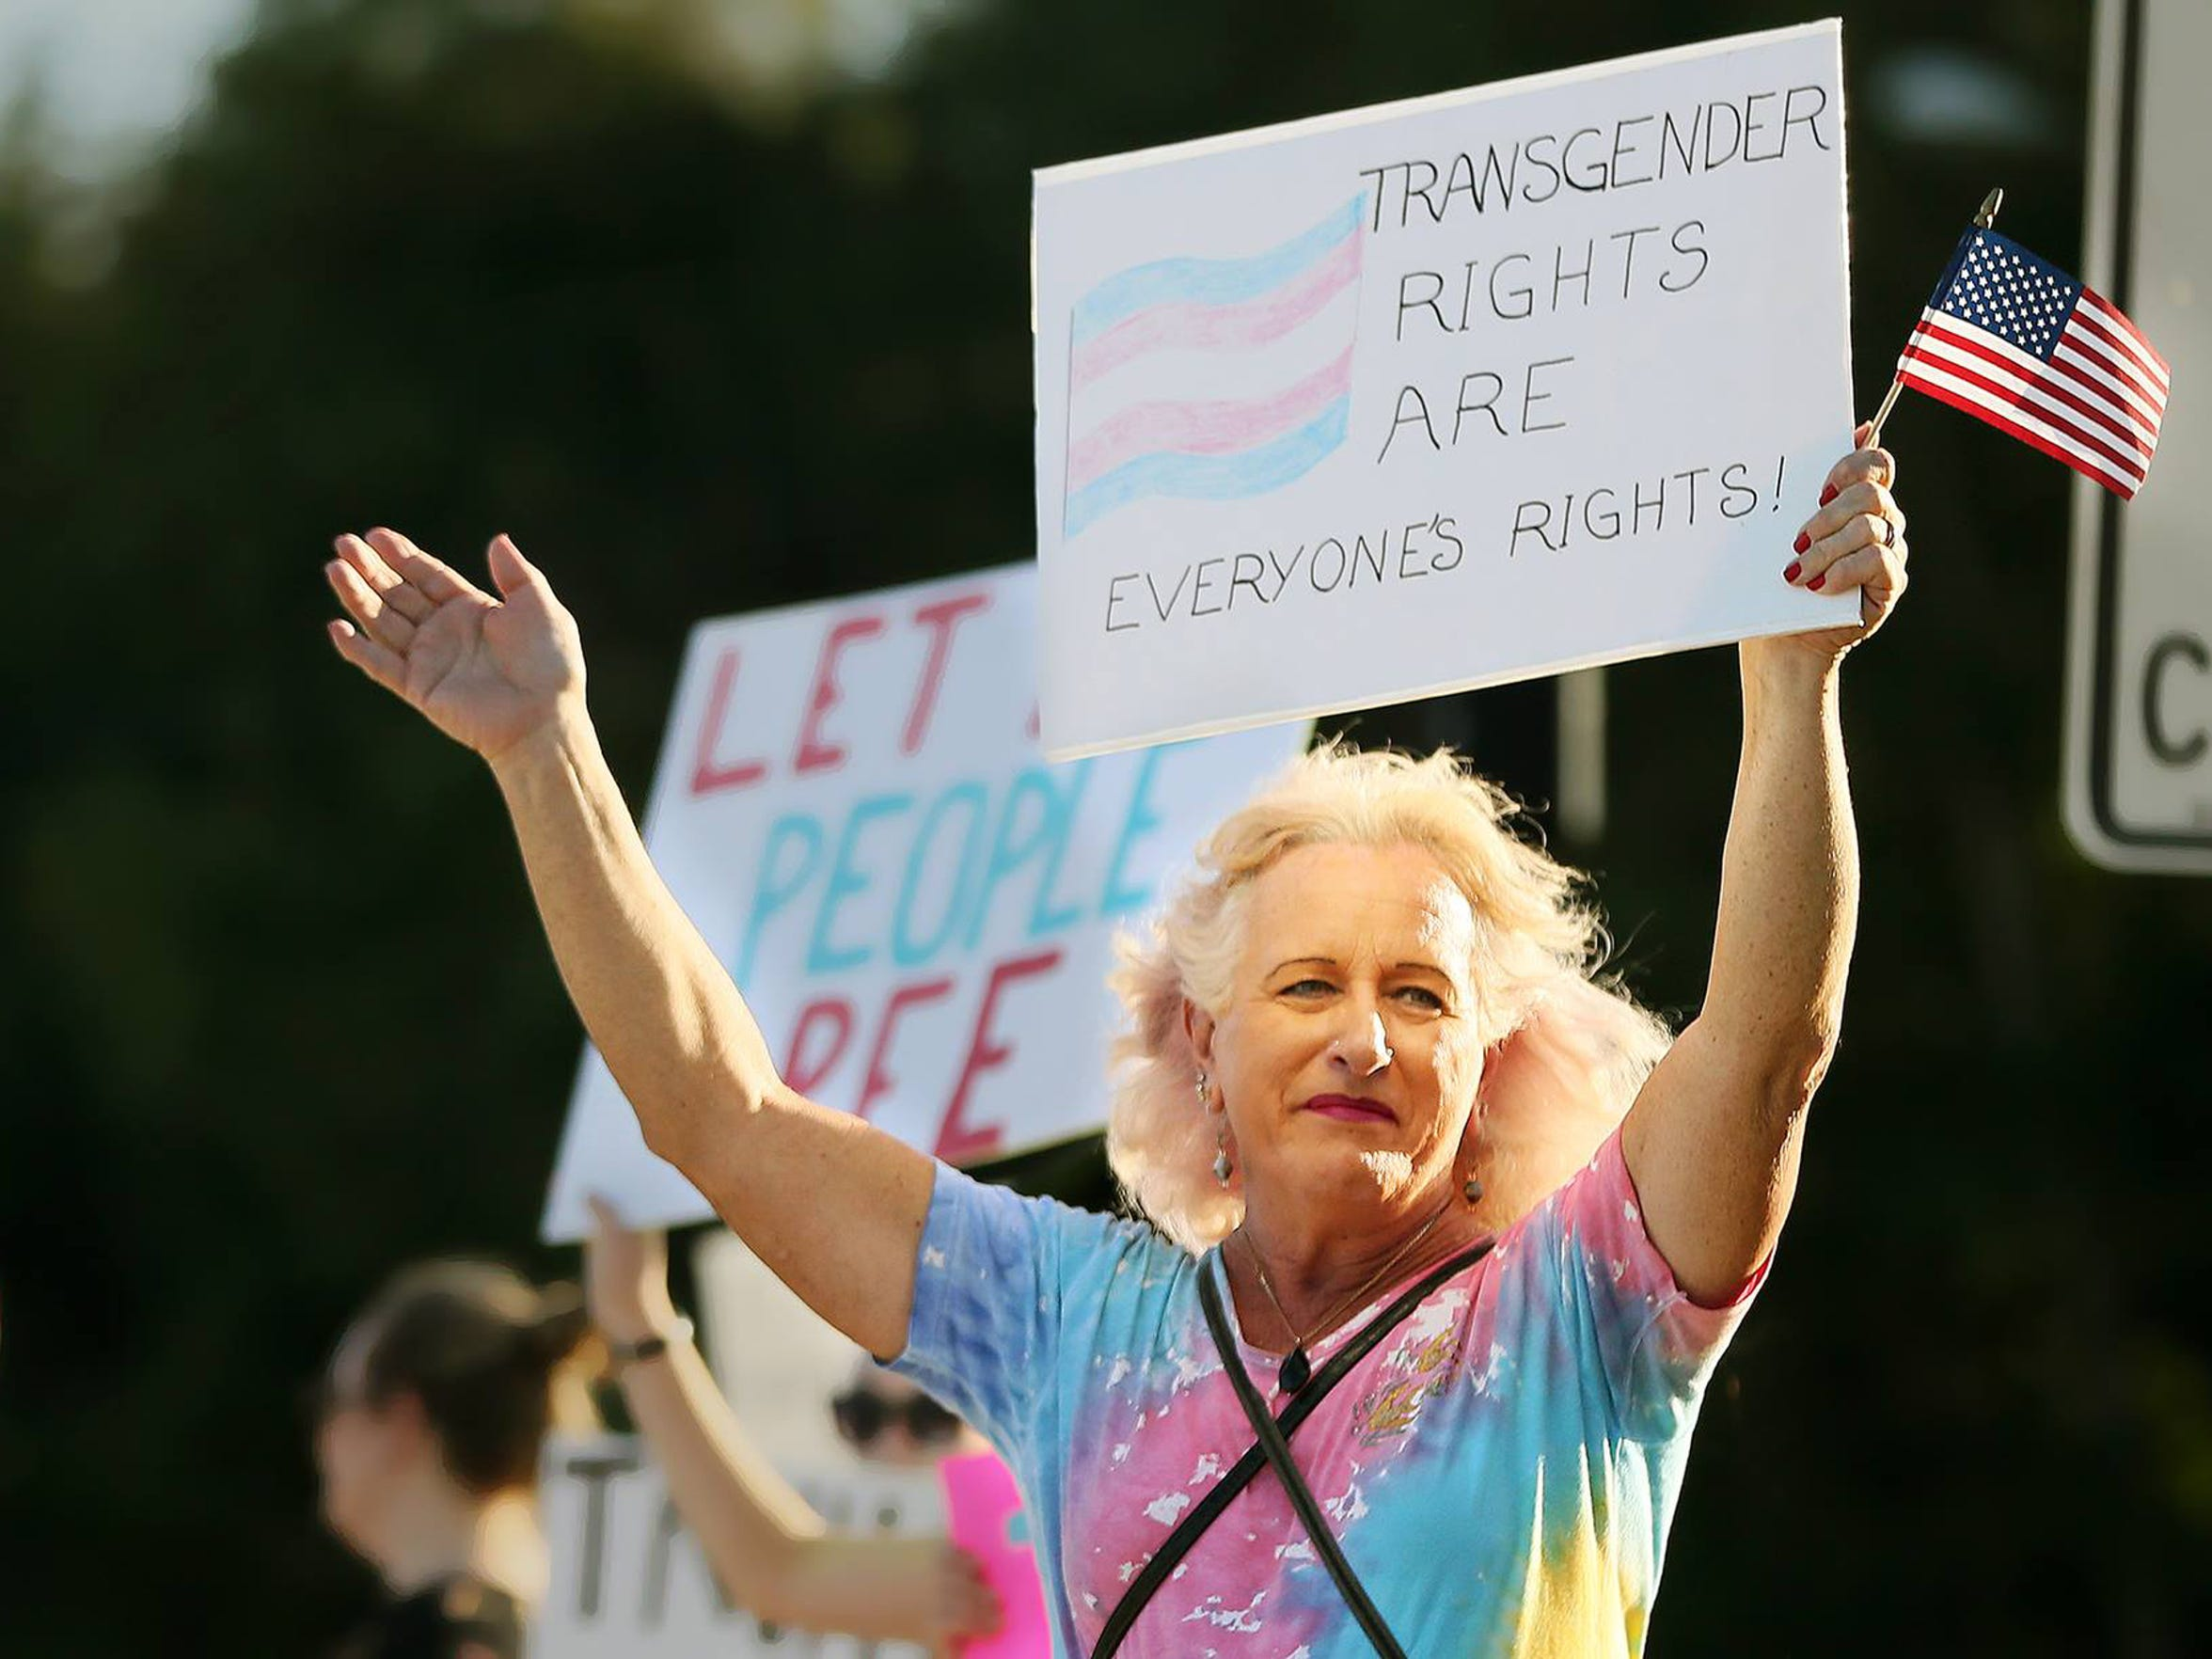 Jenna Satterfield was among more than 30 people at a February rally to support transgender youth.